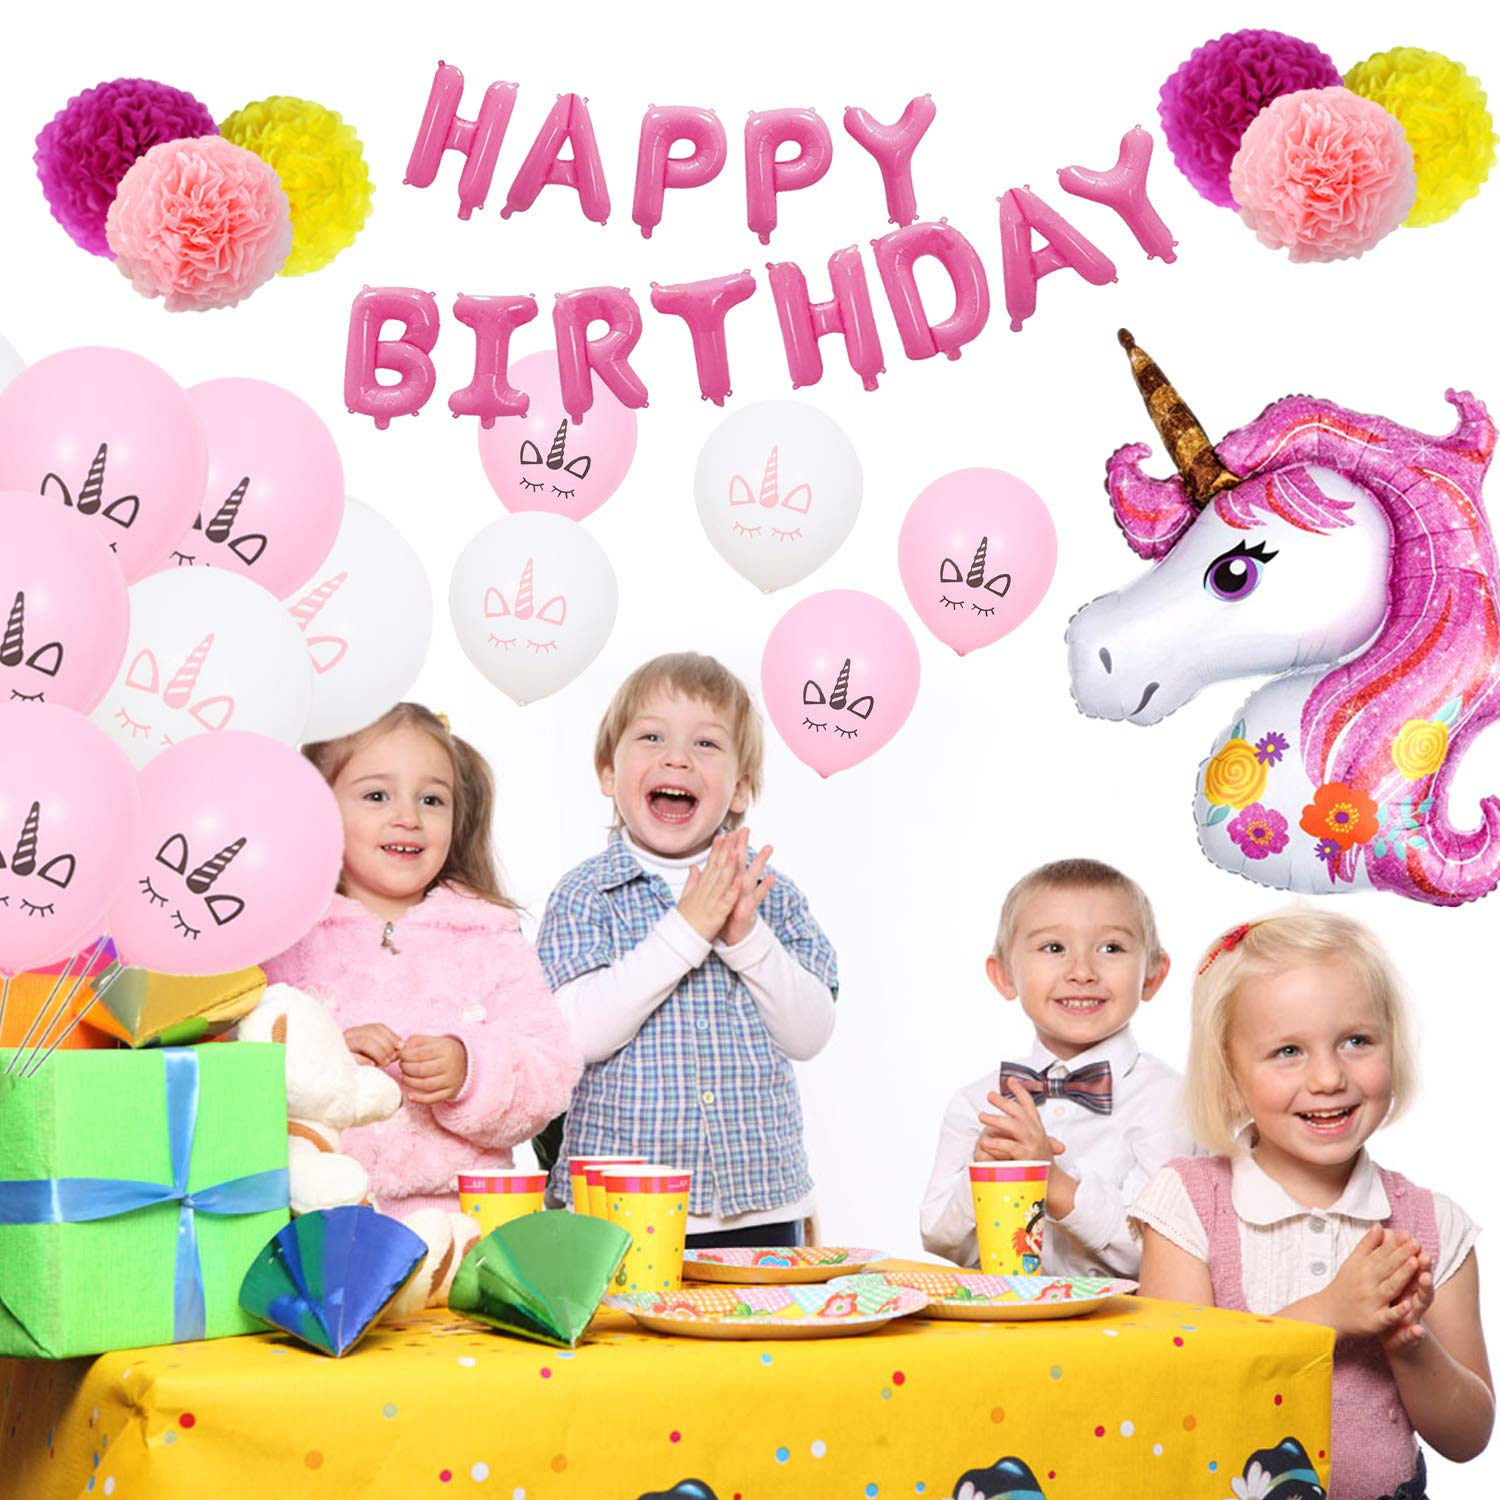 VSTON Unicorn Party Decoration, Big Unicorns Pink Foil Happy Birthday Banner 10in Latex Balloons Paper Pom Poms for Kids(29PCS)